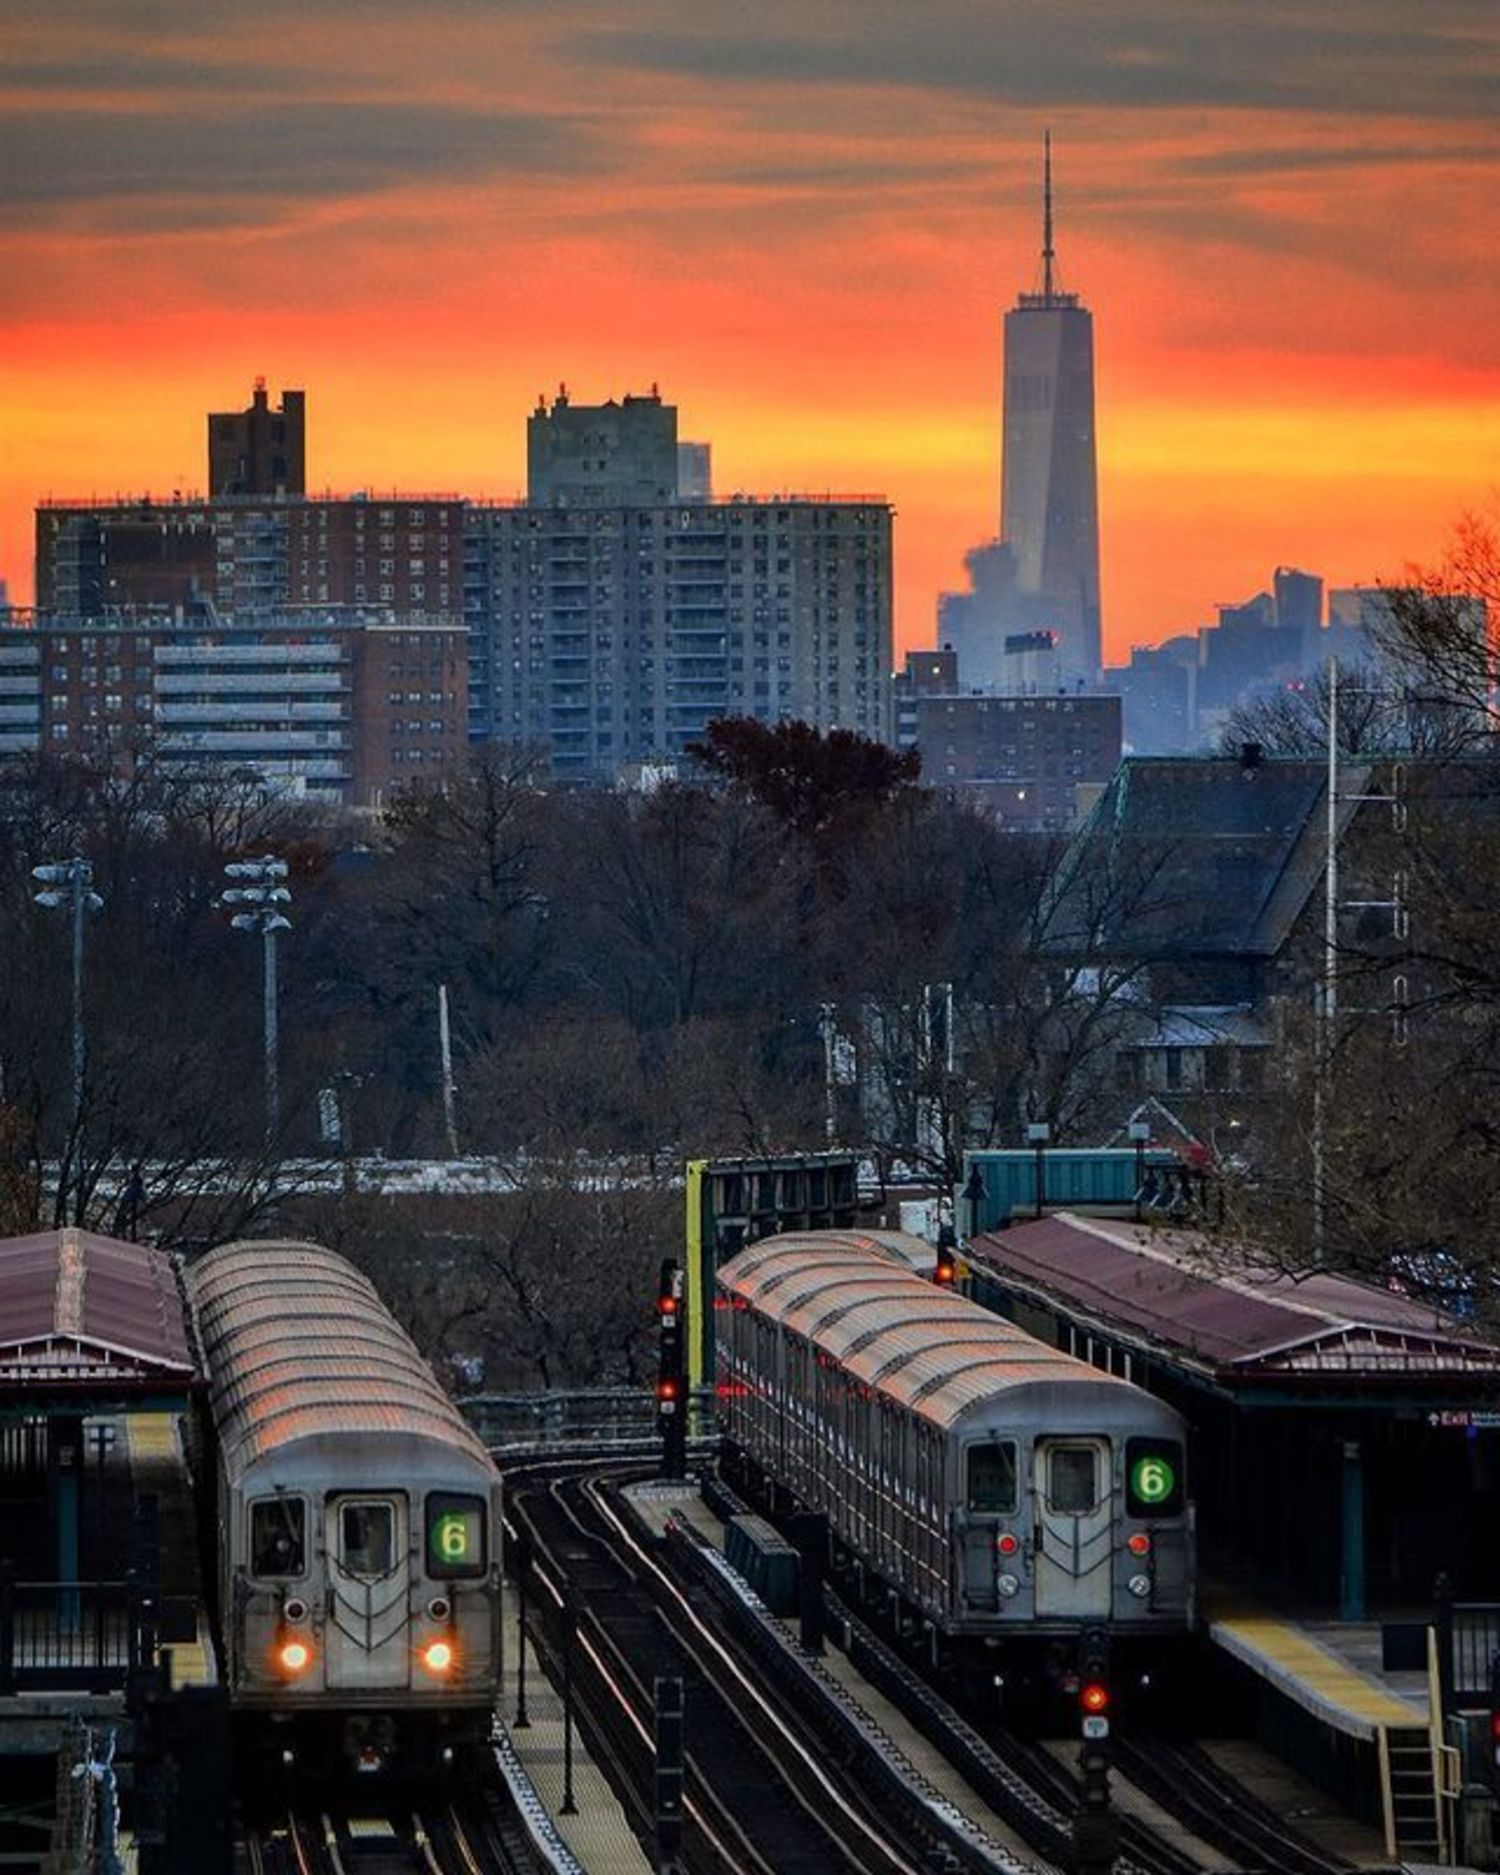 Buhre Avenue Station, The Bronx, New York